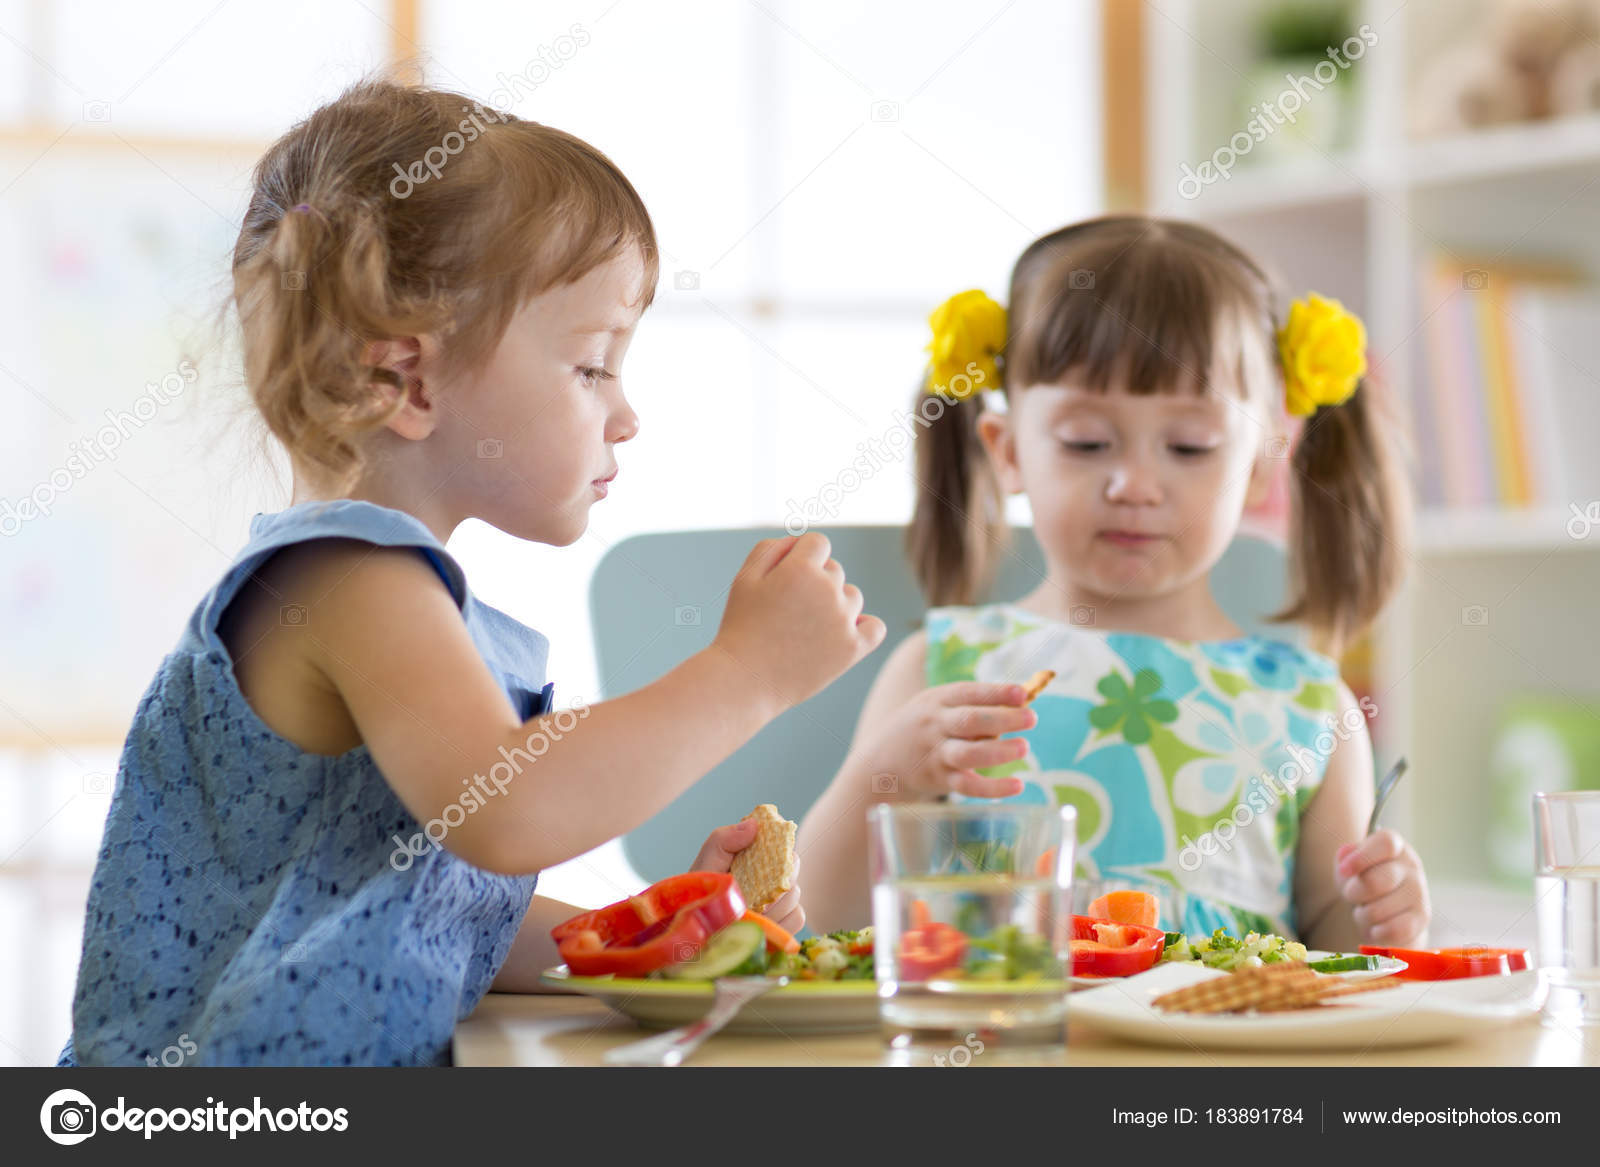 Kinder Essen in der Kita — Stockfoto © oksun70 #183891784